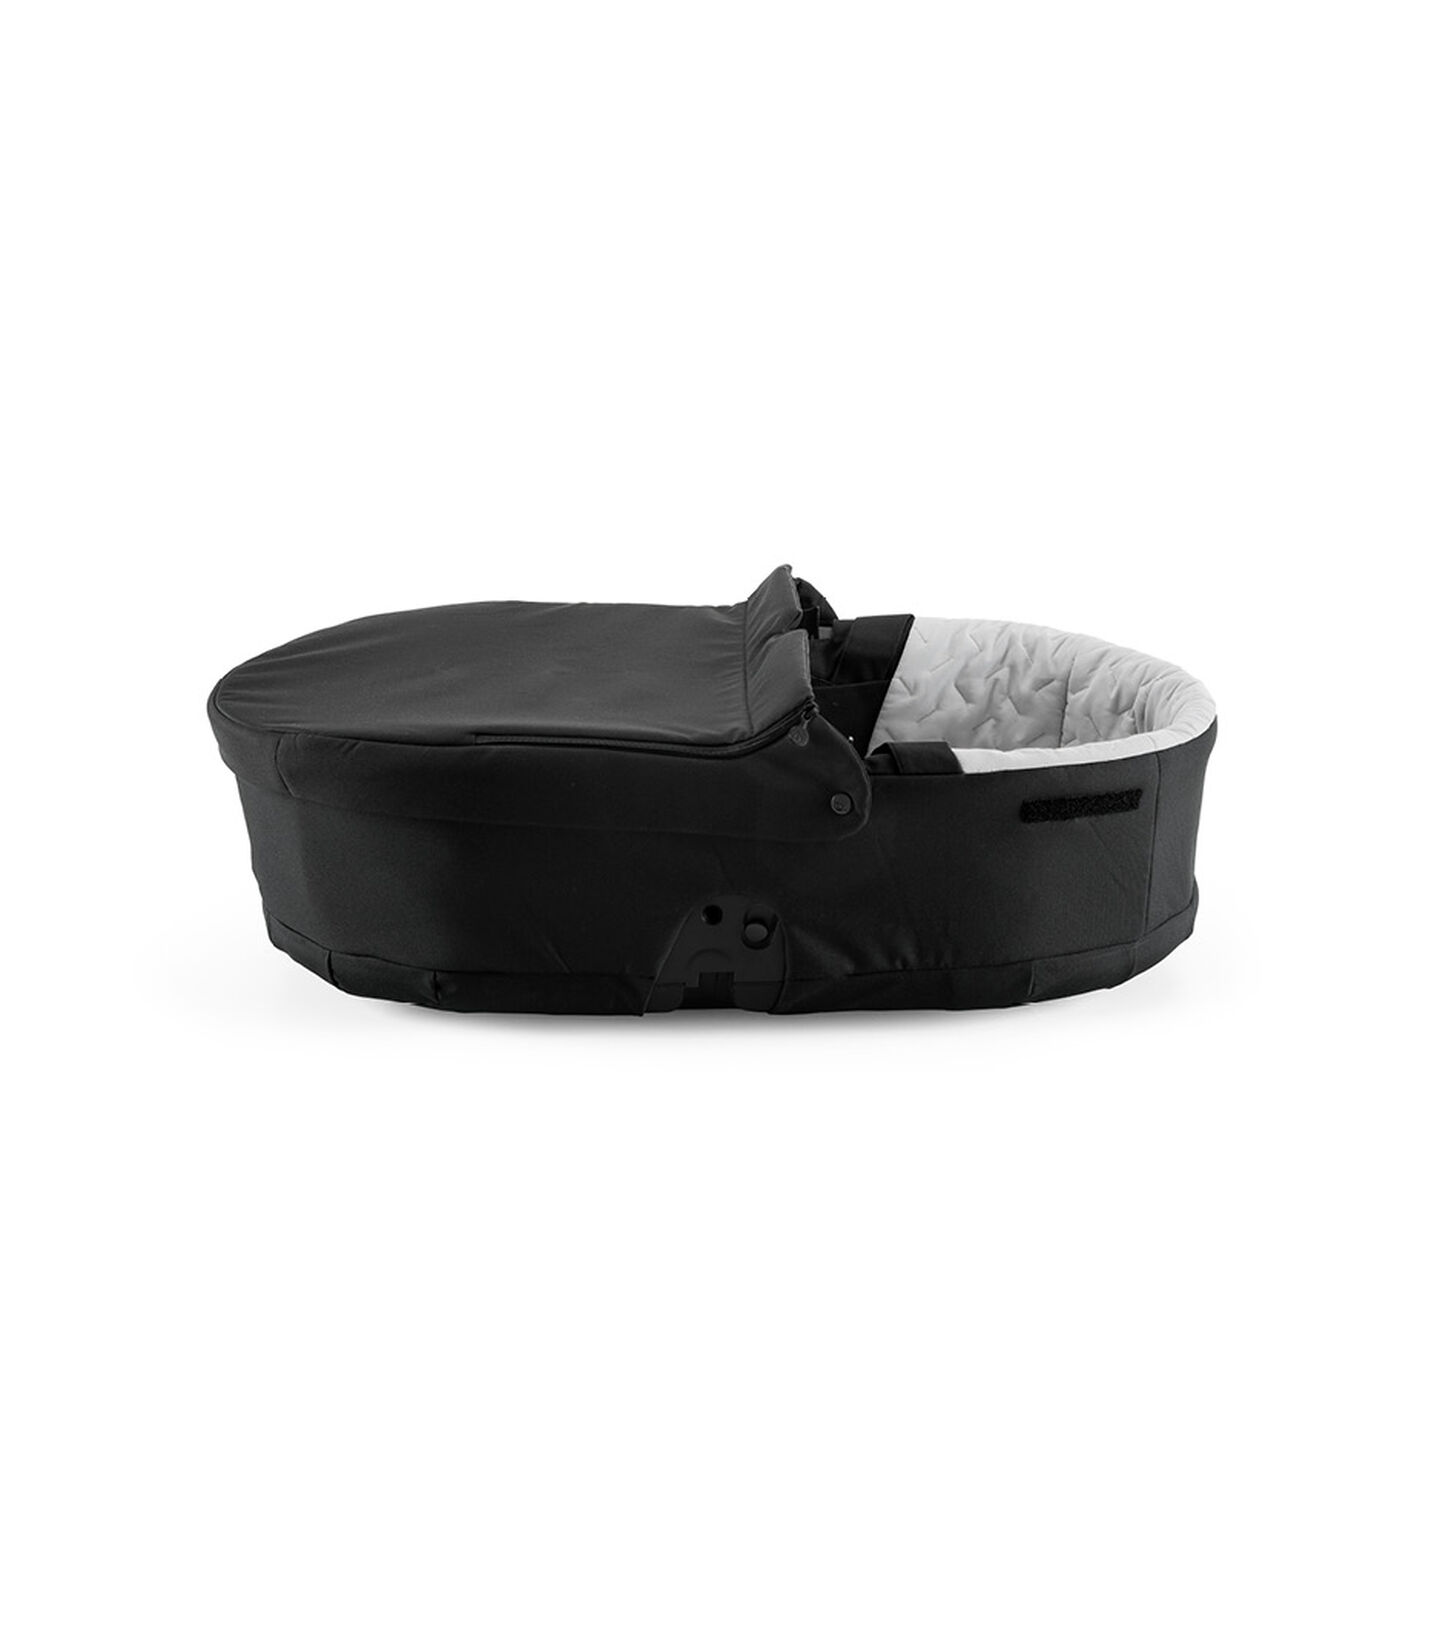 Stokke® Beat Carry Cot Black, Black, mainview